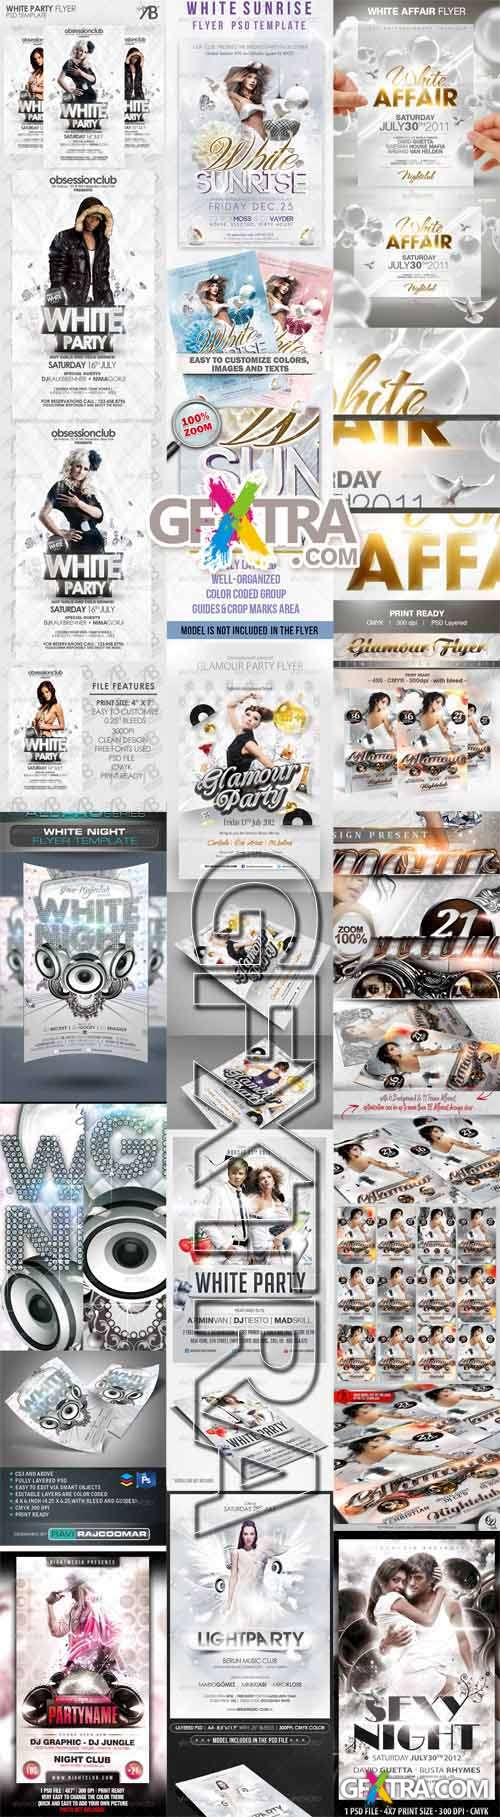 10 White Glamour Flyer/Poster Template Bundle